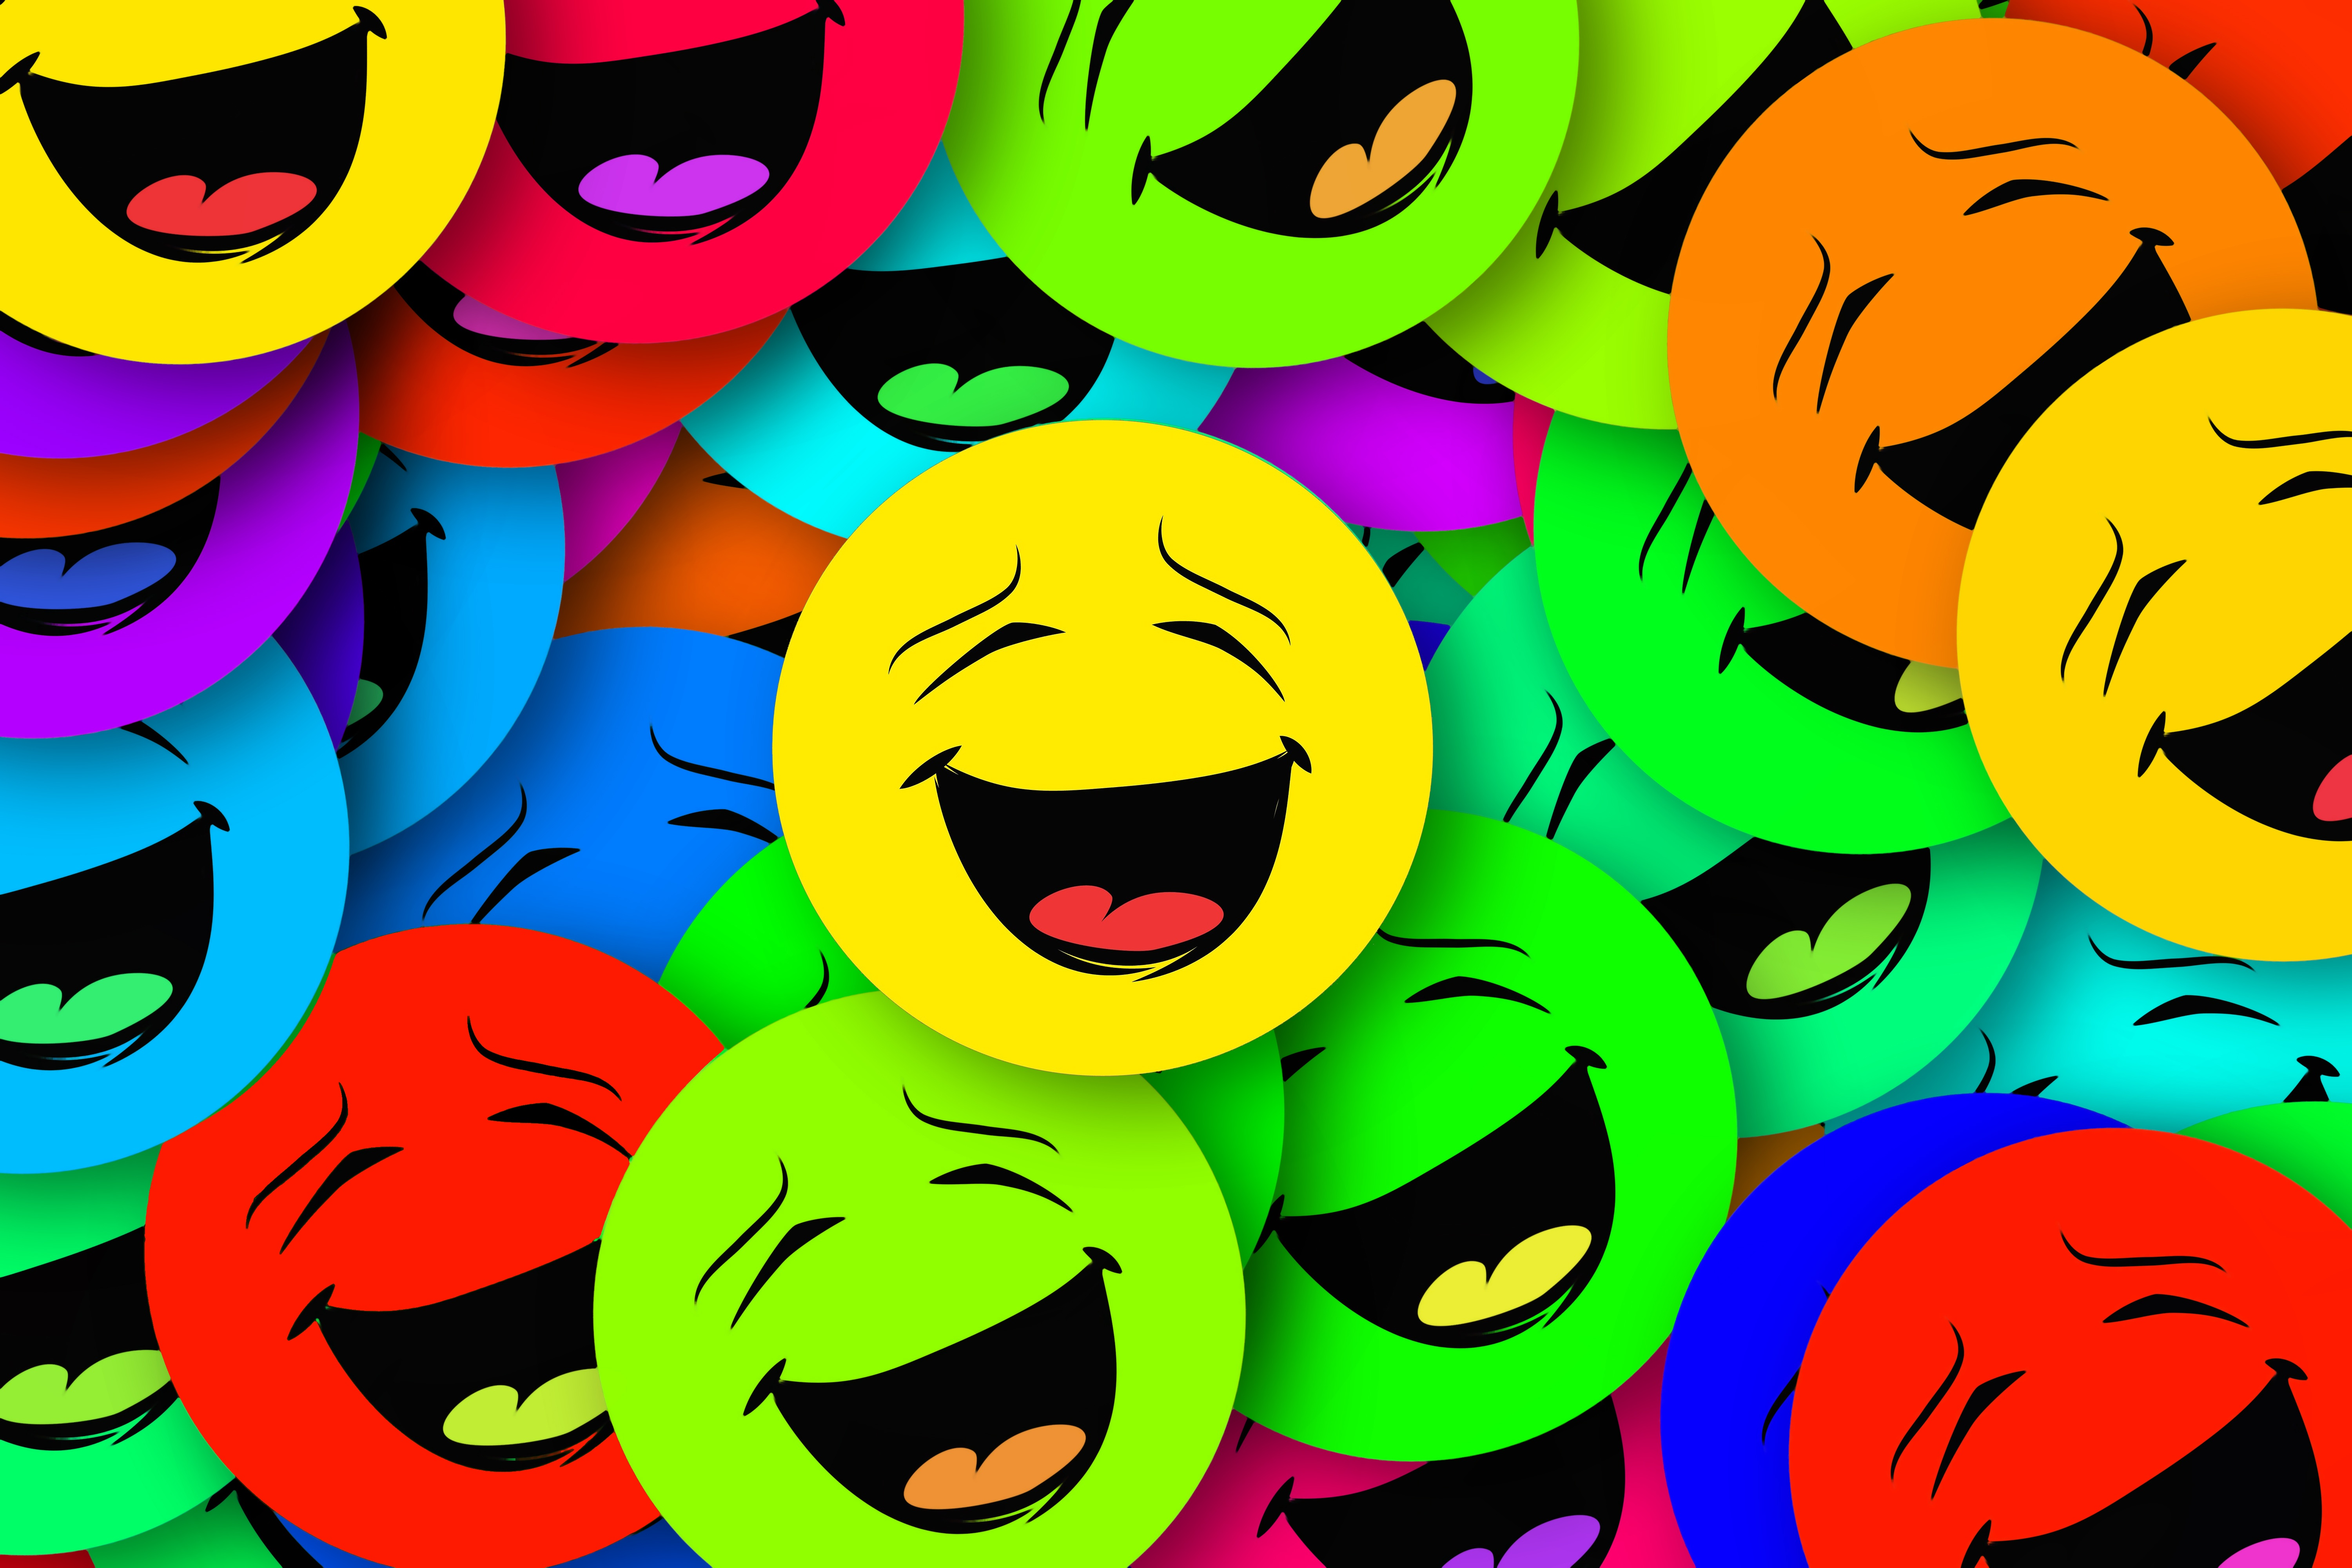 62461 download wallpaper Miscellanea, Miscellaneous, Multicolored, Motley, Smile, Emotions, Smilies, Smiles screensavers and pictures for free